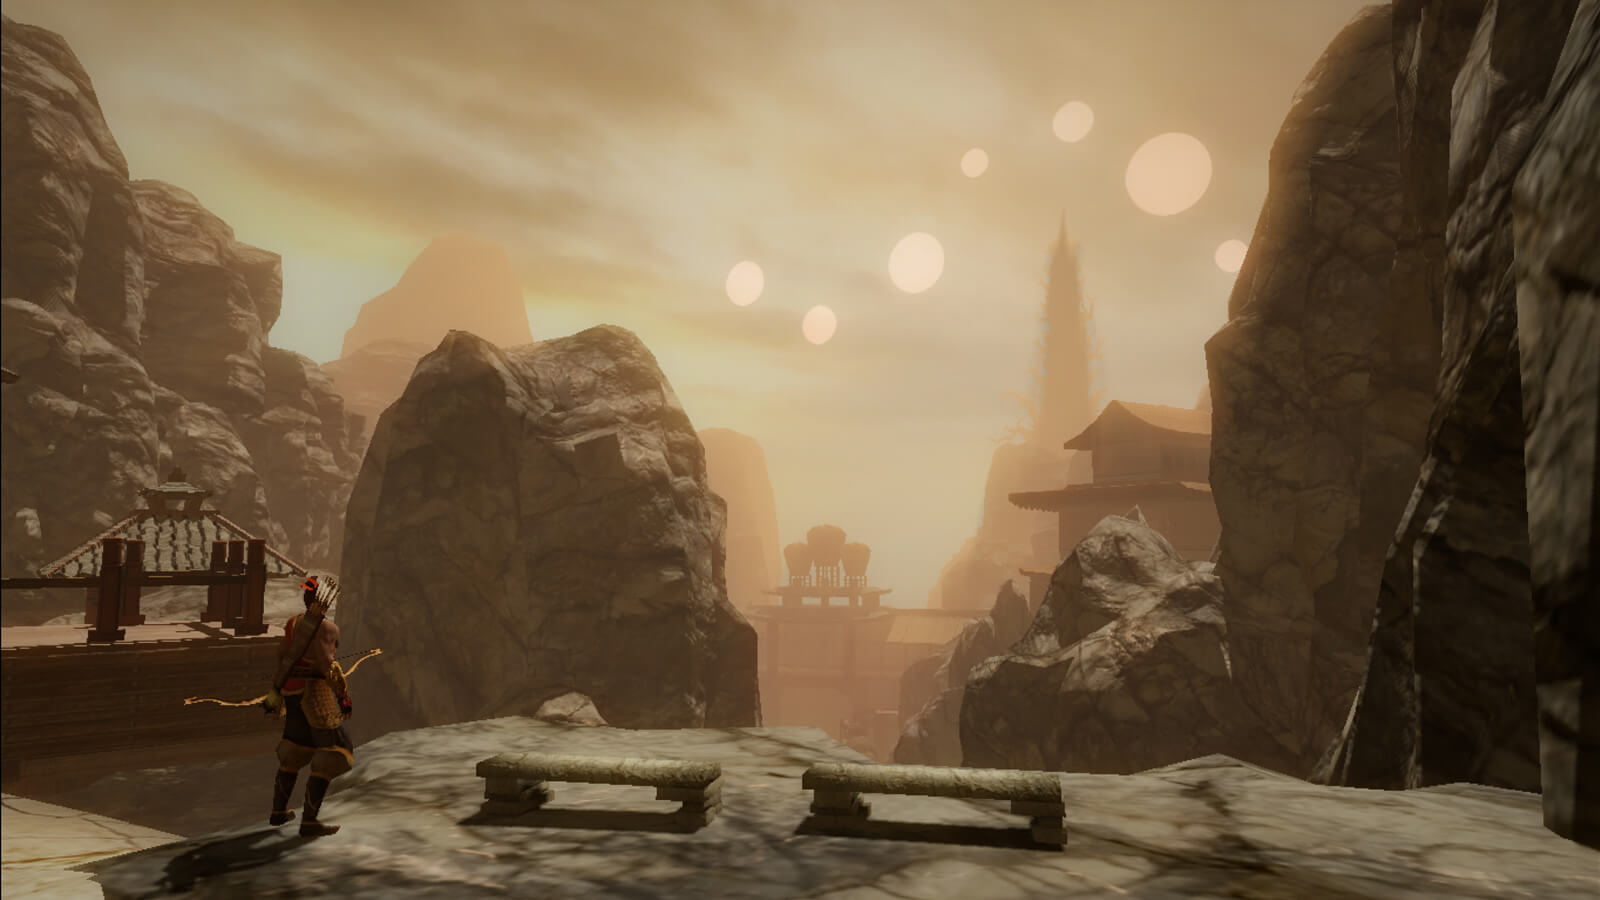 View of the player's character from behind in a mountainous village. Seven suns of varying sizes hang in a hazy sky.